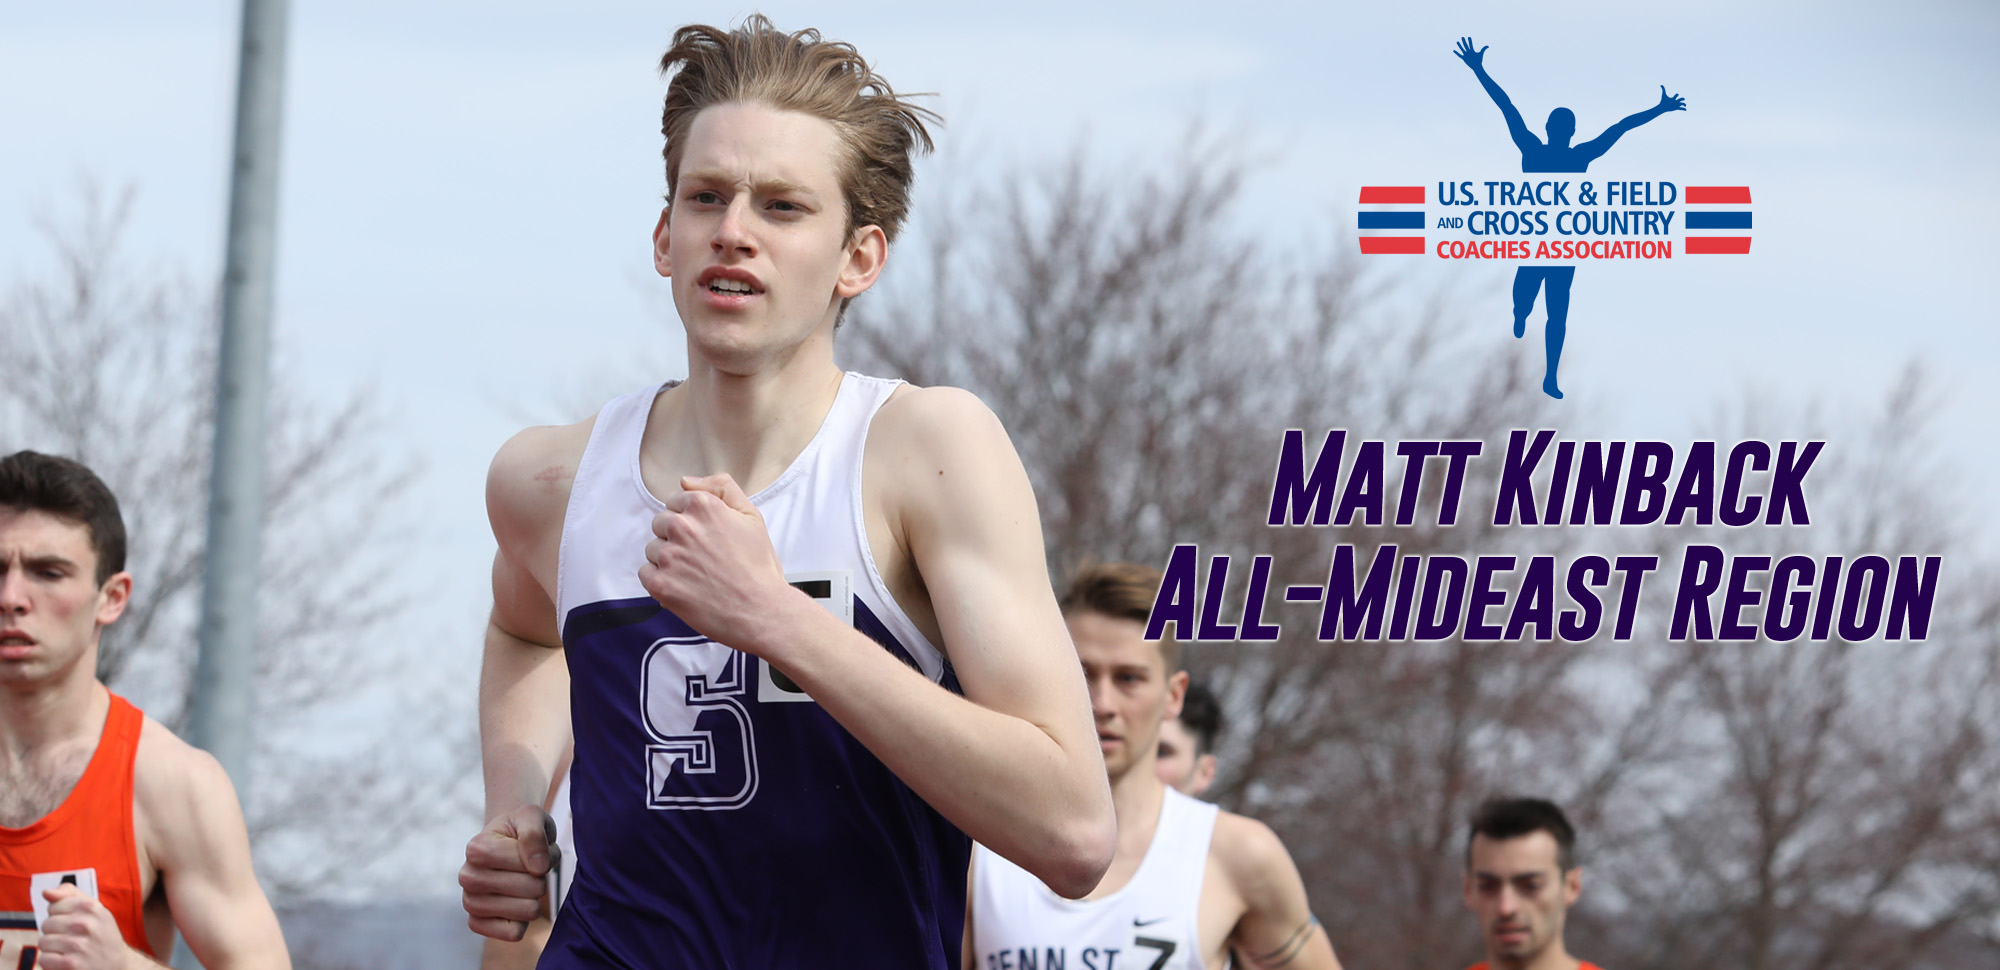 Sophomore Matt Kinback of the men's track & field team has earned All-Region honors in the 800 meter run. © Photo by Timothy R. Dougherty / doubleeaglephotography.com